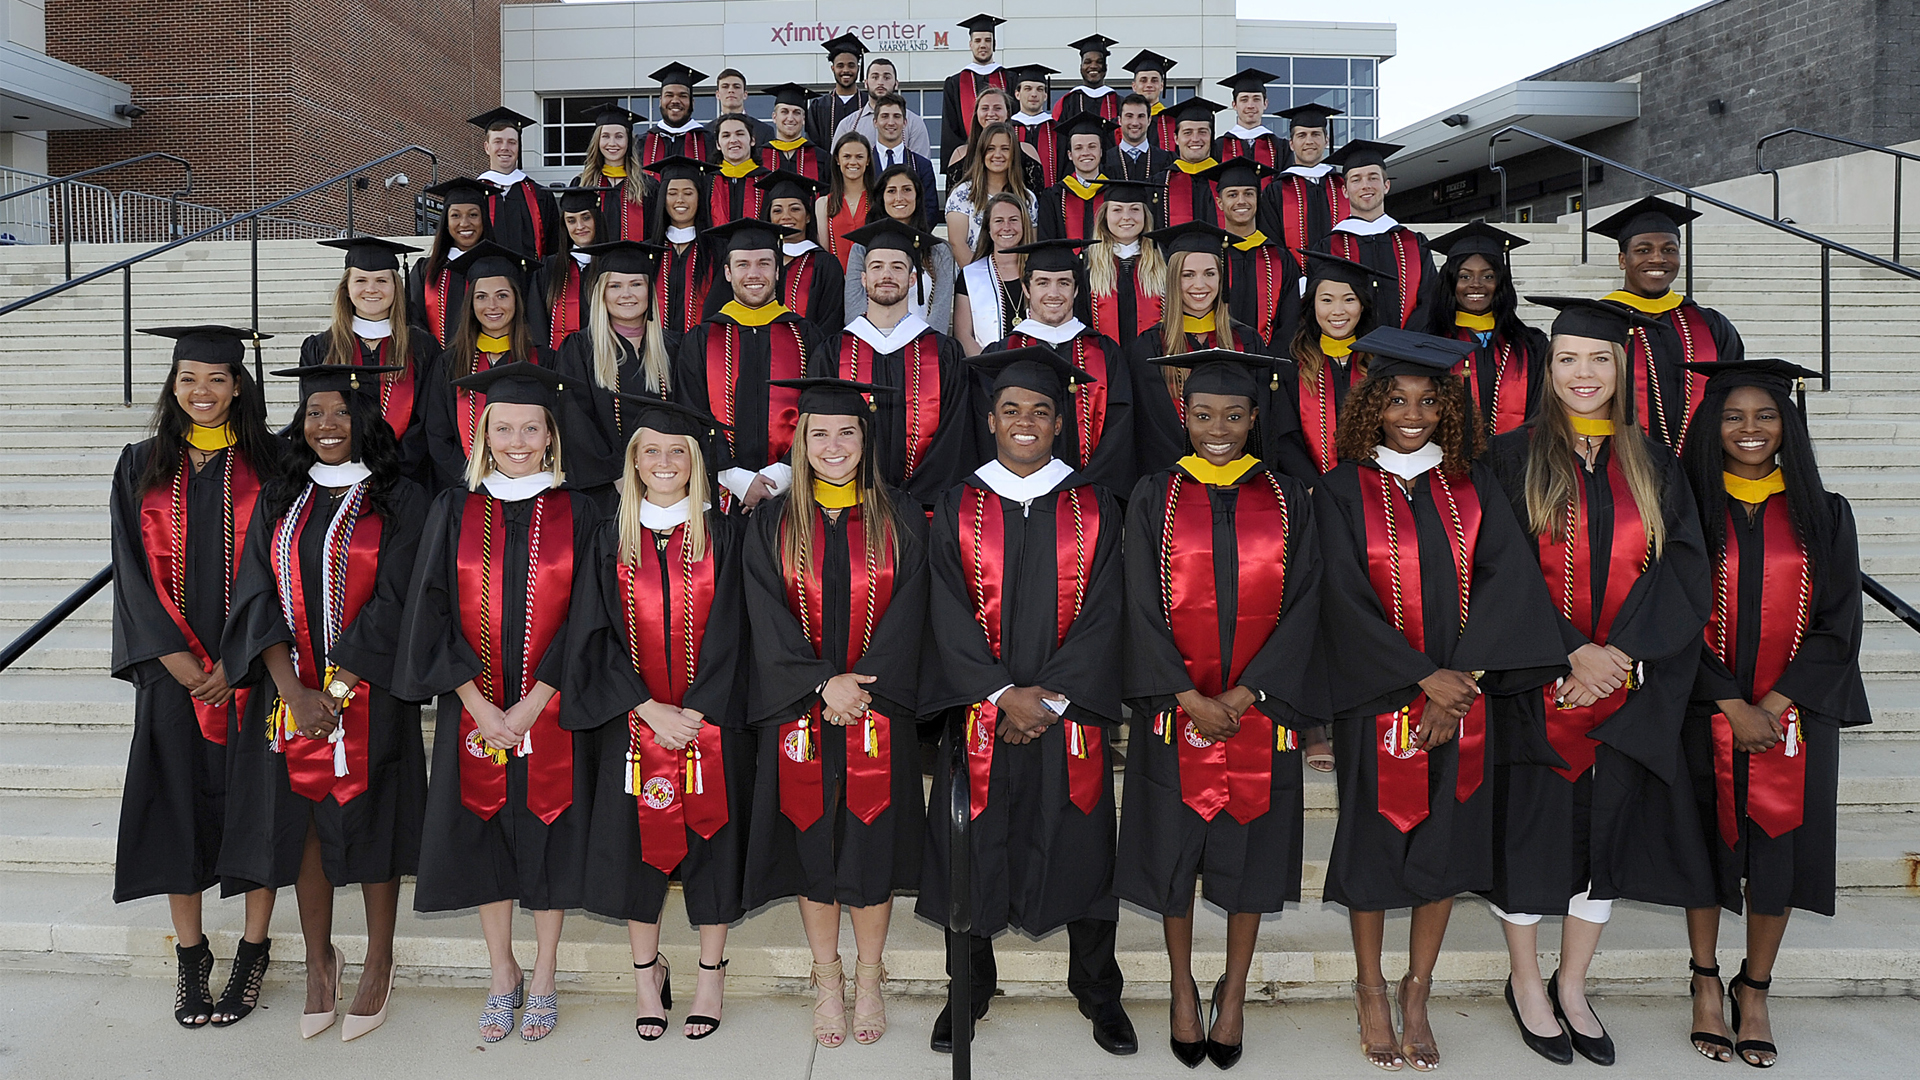 Umd Graduation 2020.Maryland Achieves Record Breaking Gsr Scores University Of